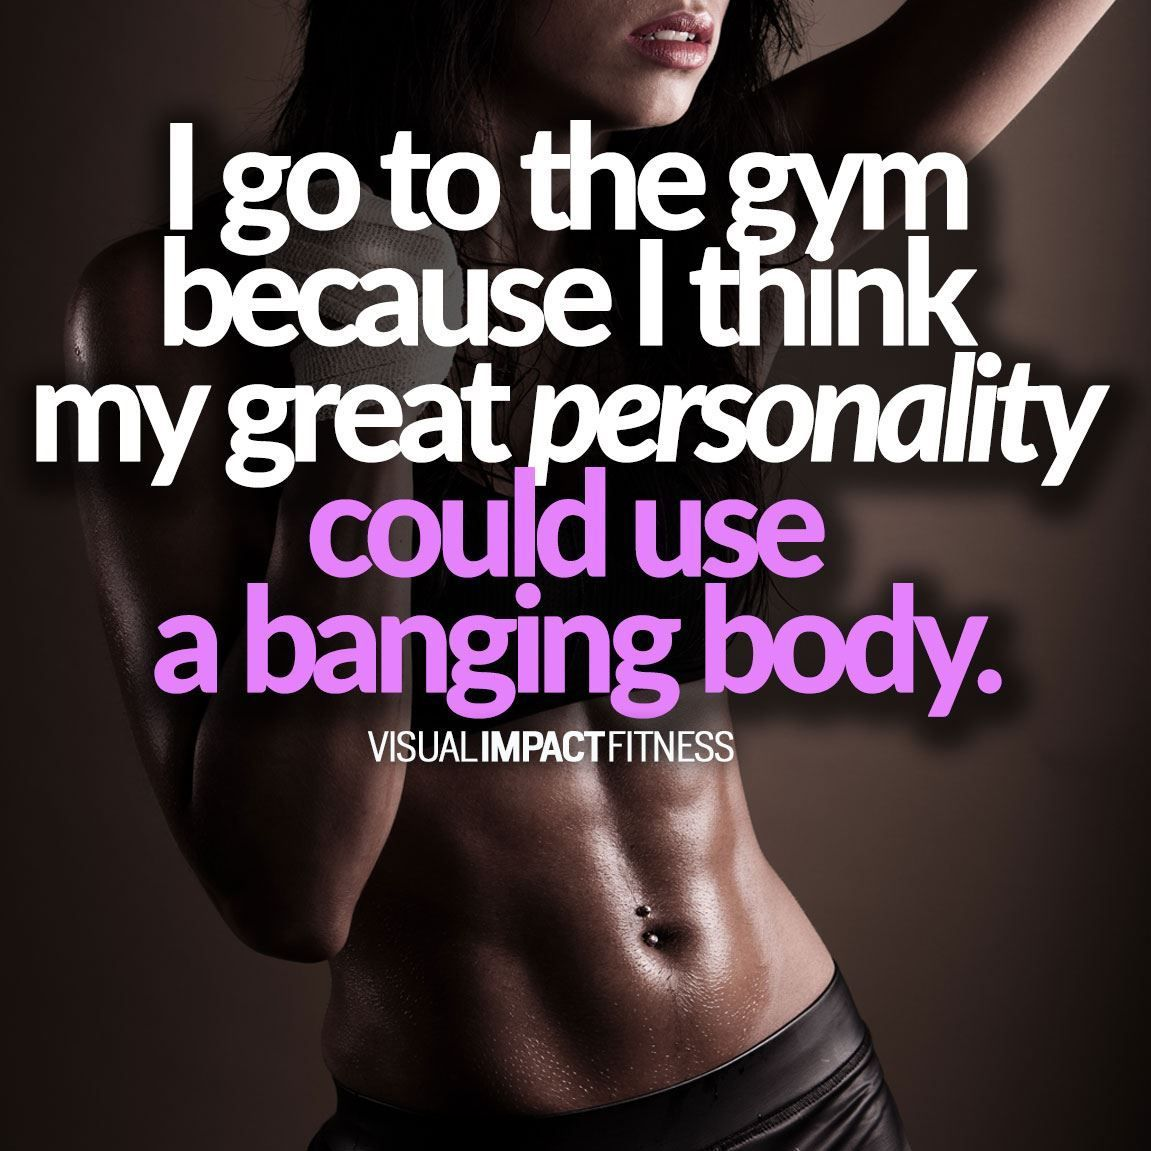 15 Inspirational Fitness Quotes to Get You Motivated to Work Out – Inspirational Fitness Quotes